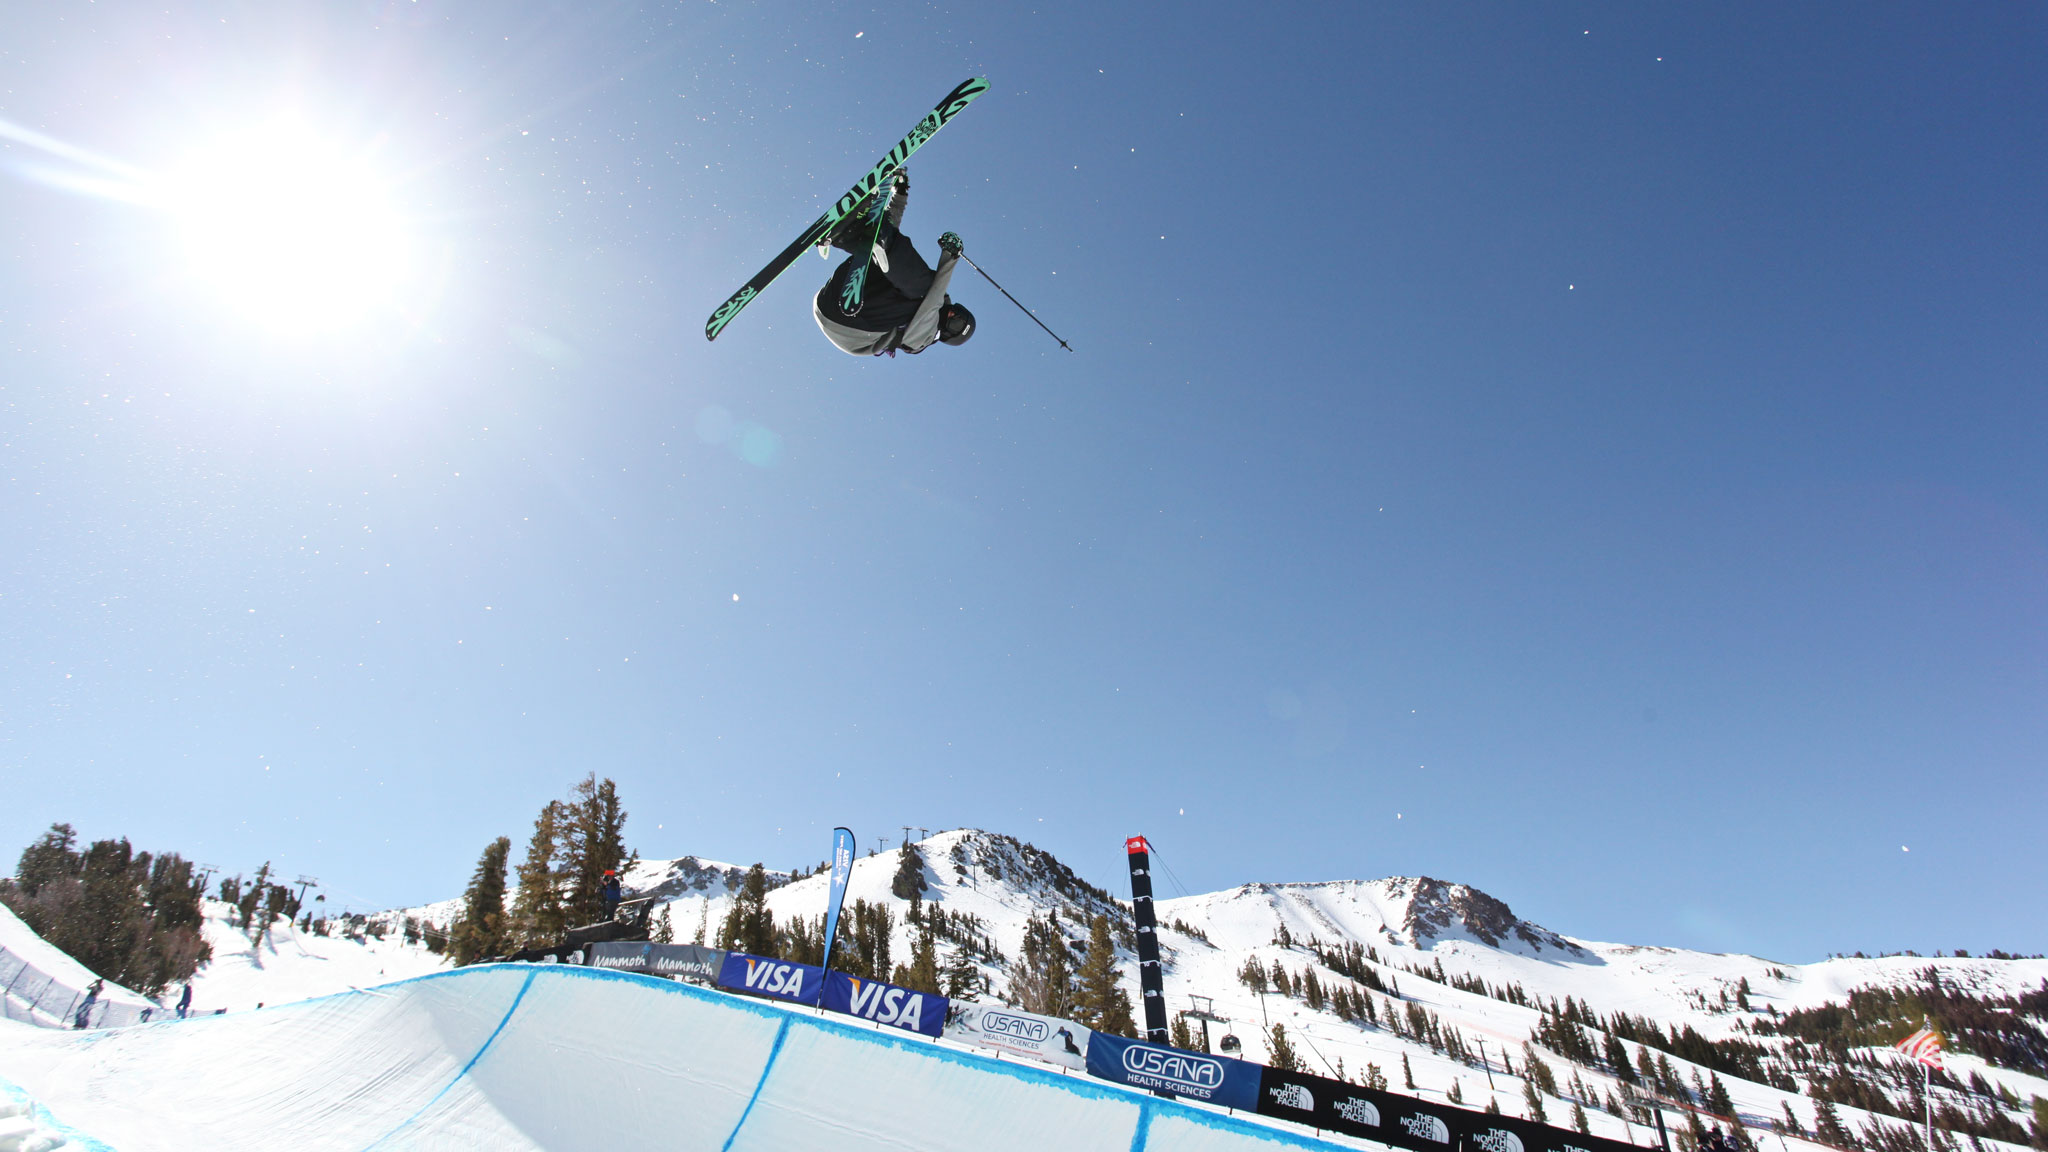 Lyman Currier competes in both slopestyle and halfpipe, but you'll see him in the pipe at X Games Aspen.